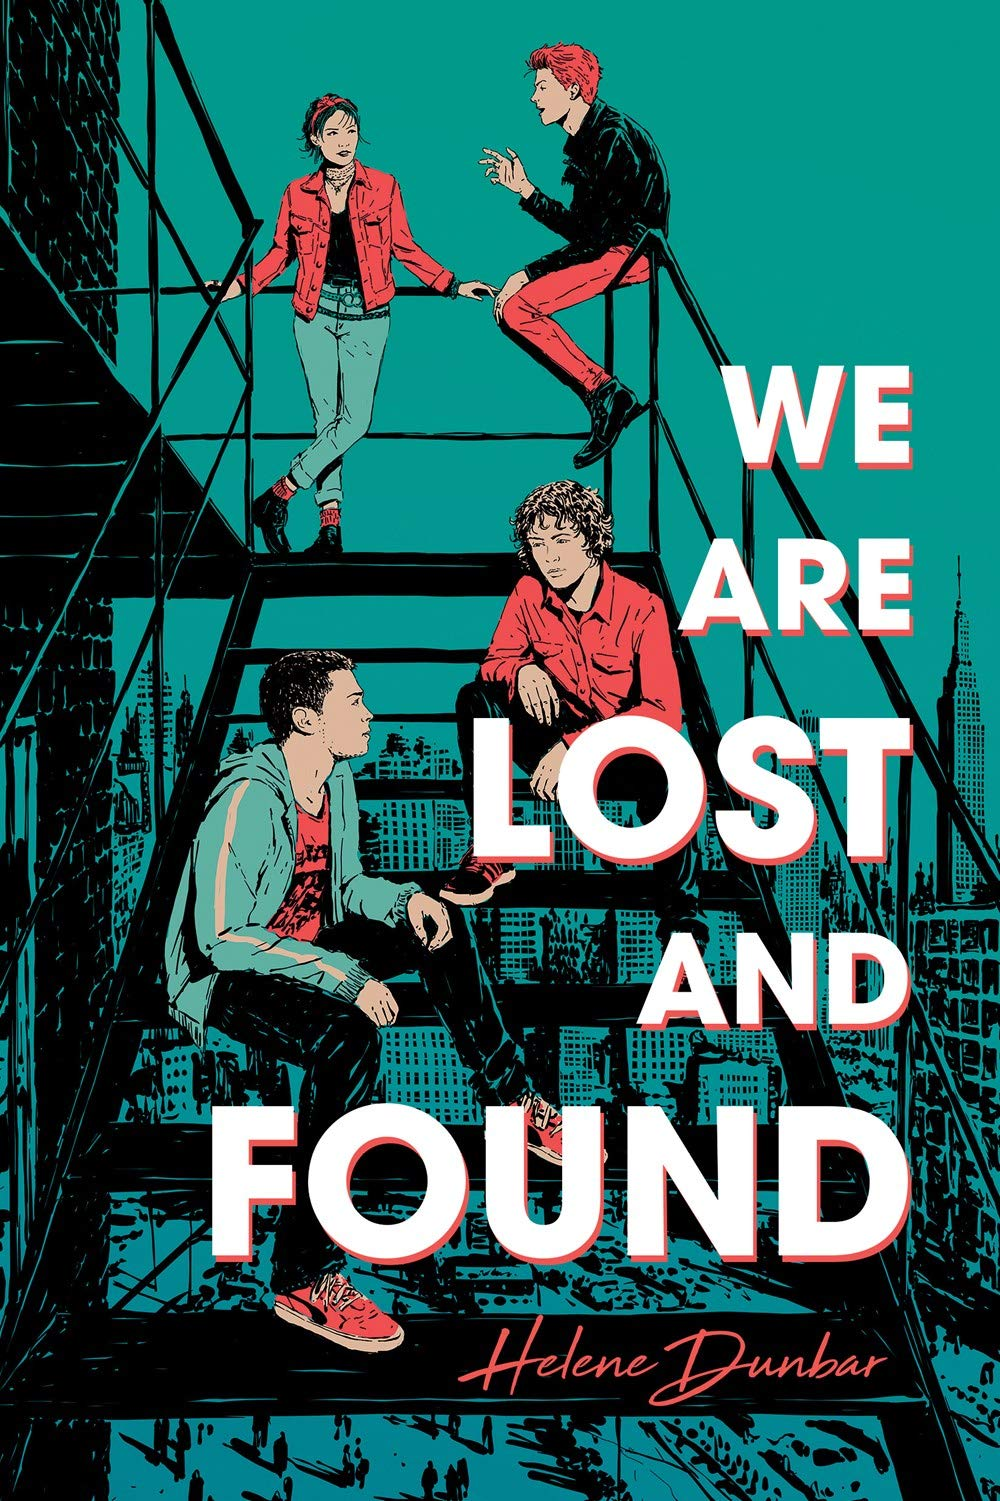 Amazon.com: We Are Lost and Found (9781728206998): Dunbar, Helene ...